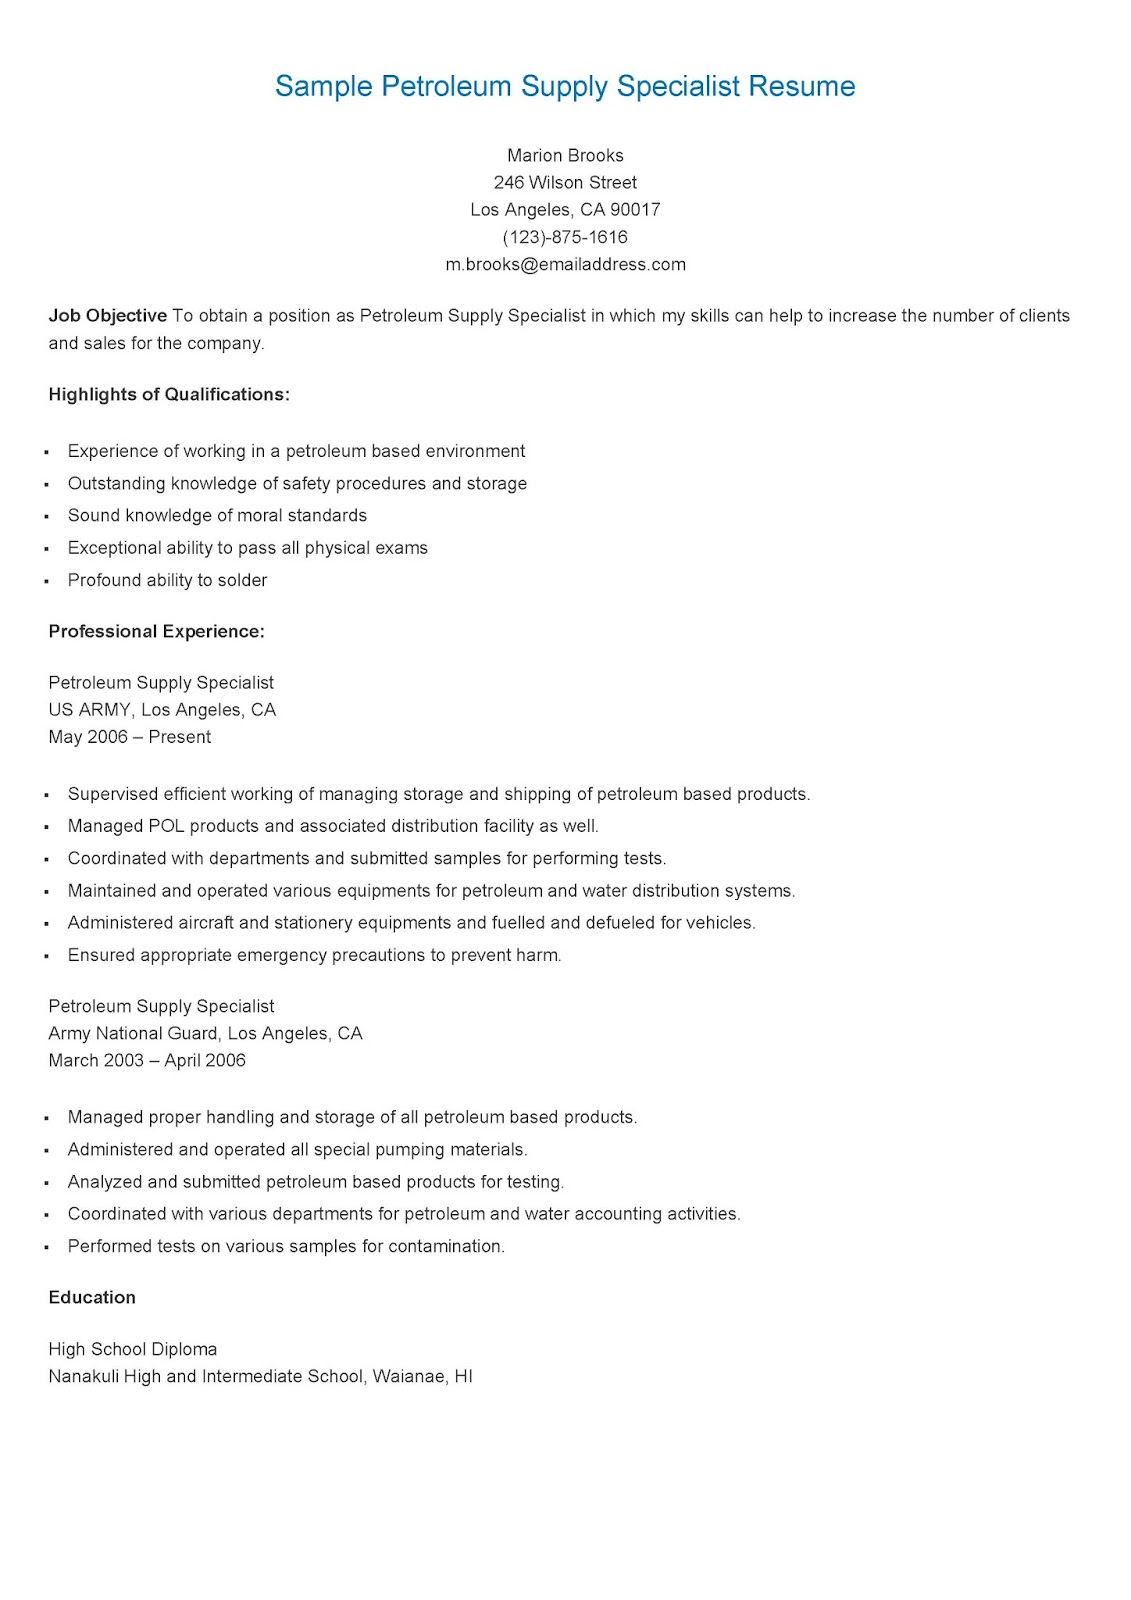 resume sles sle petroleum supply specialist resume